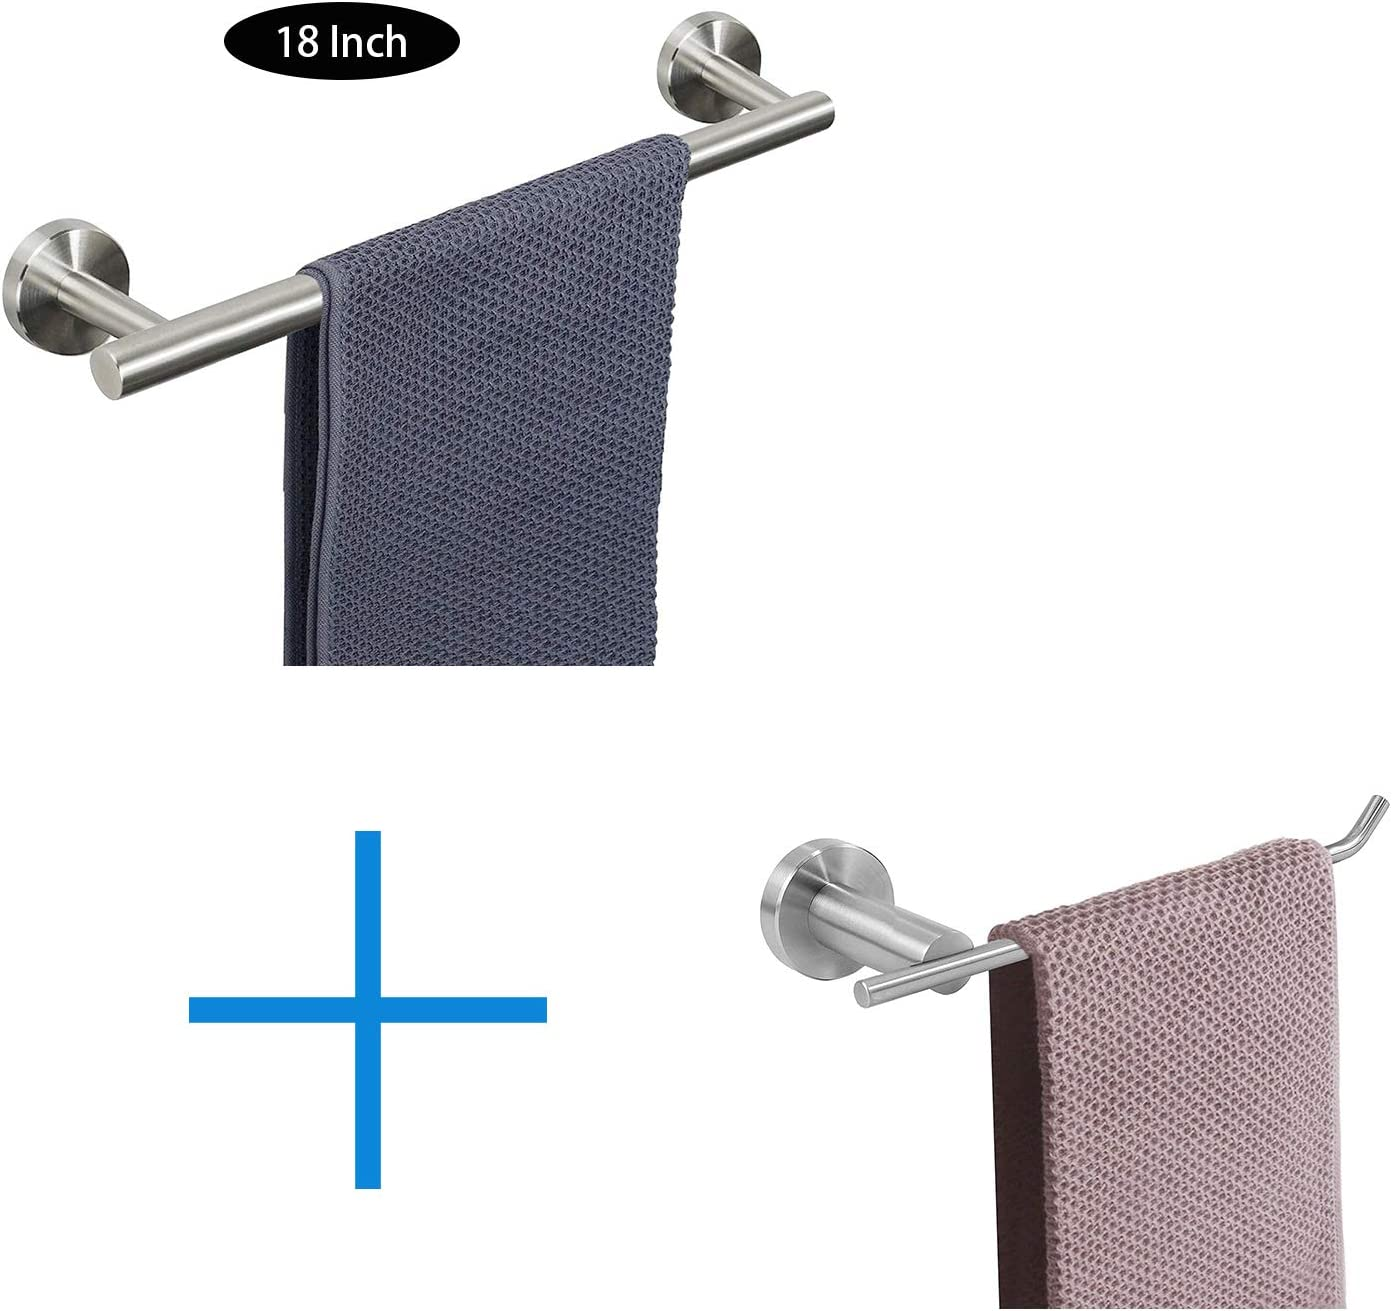 NearMoon Bathroom Towel Bar Towel Holder Wall Mounted Bath Accessories Thicken Stainless Steel Shower Towel Rack for Bathroom Brushed Gold, 9 Inch